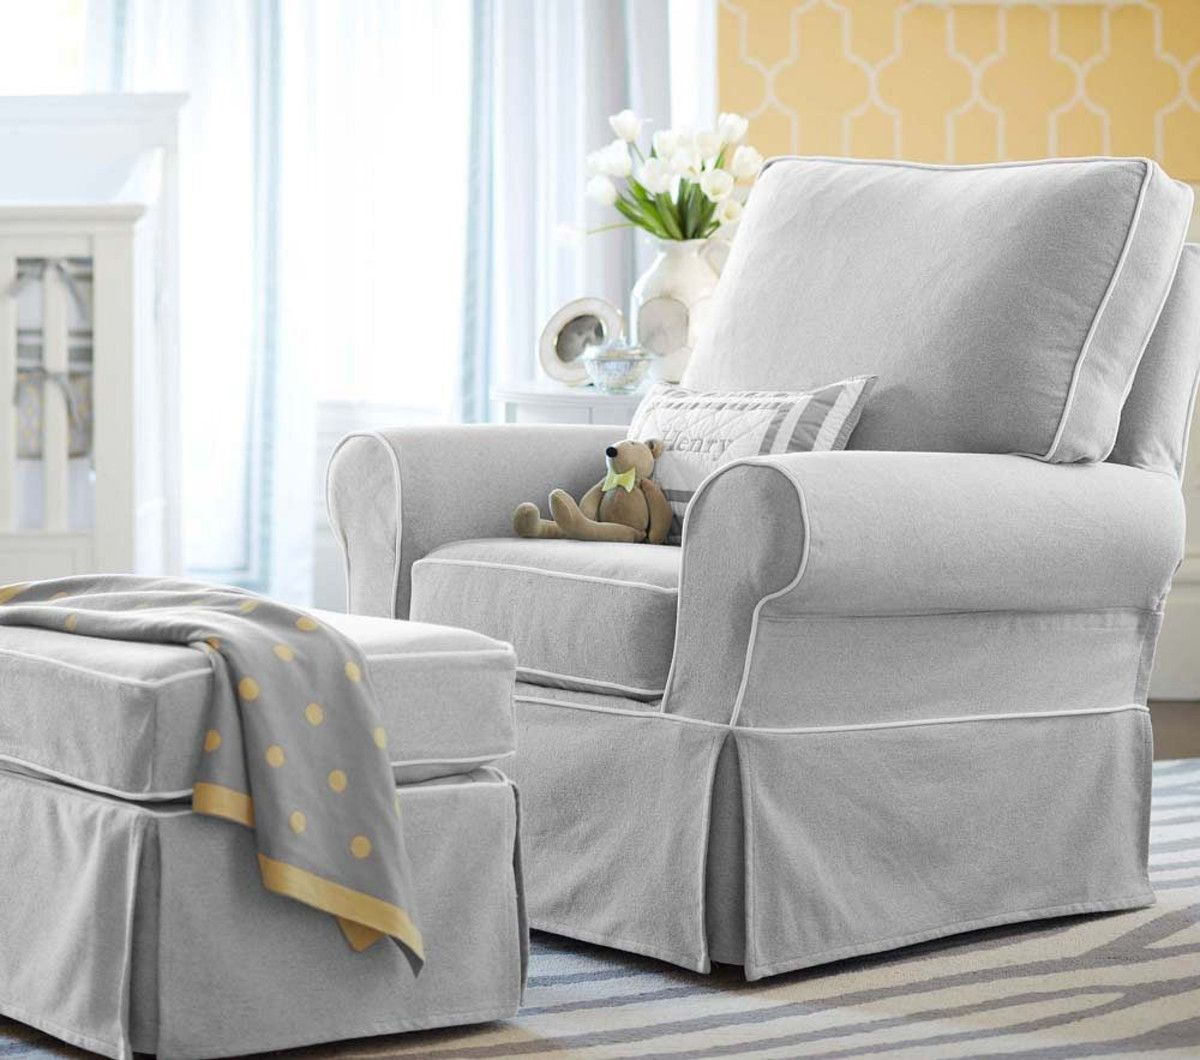 pottery barn baby chair cover henriksdal etsy the most comfortable nursing and ottoman comfort